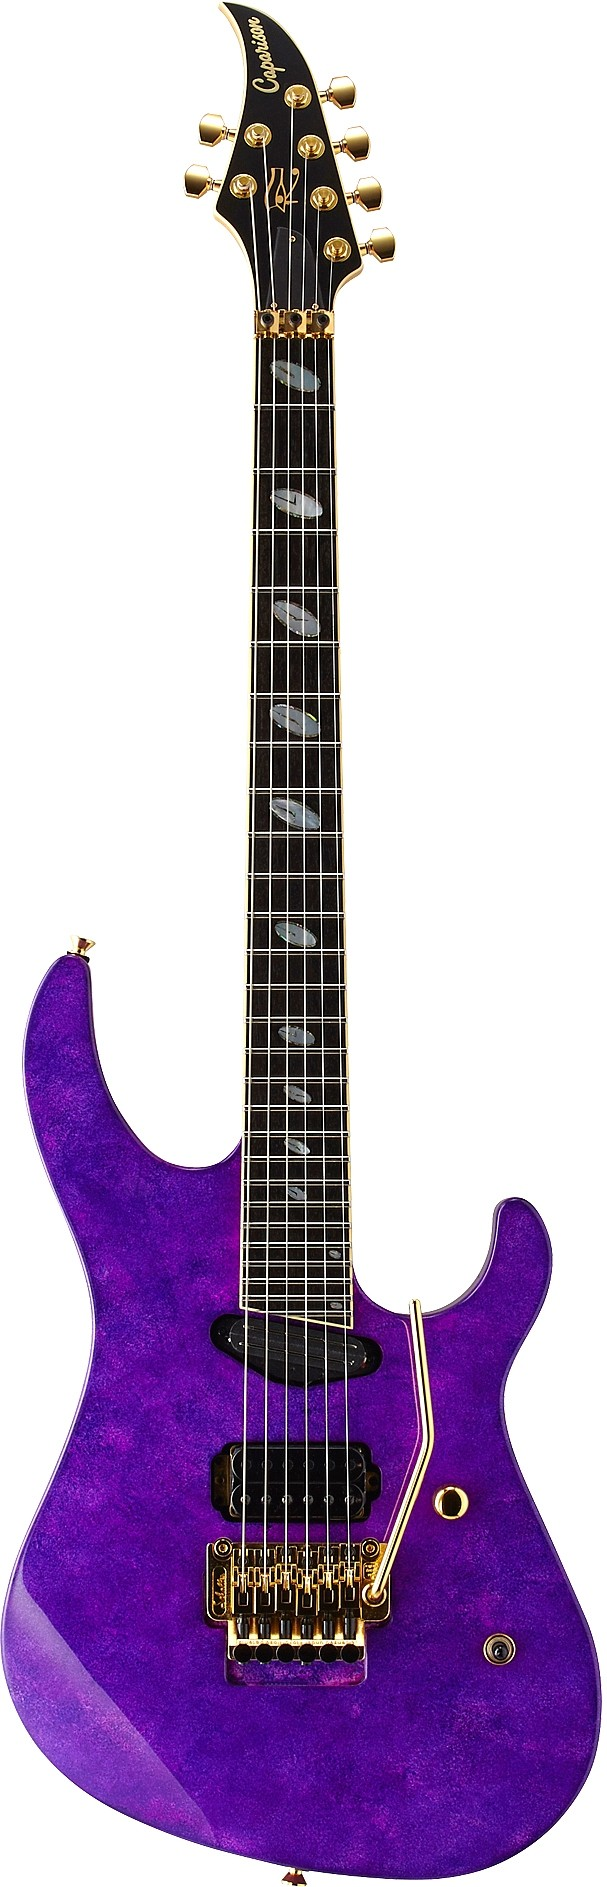 Horus-M3 - 20th Anniversary Model by Caparison